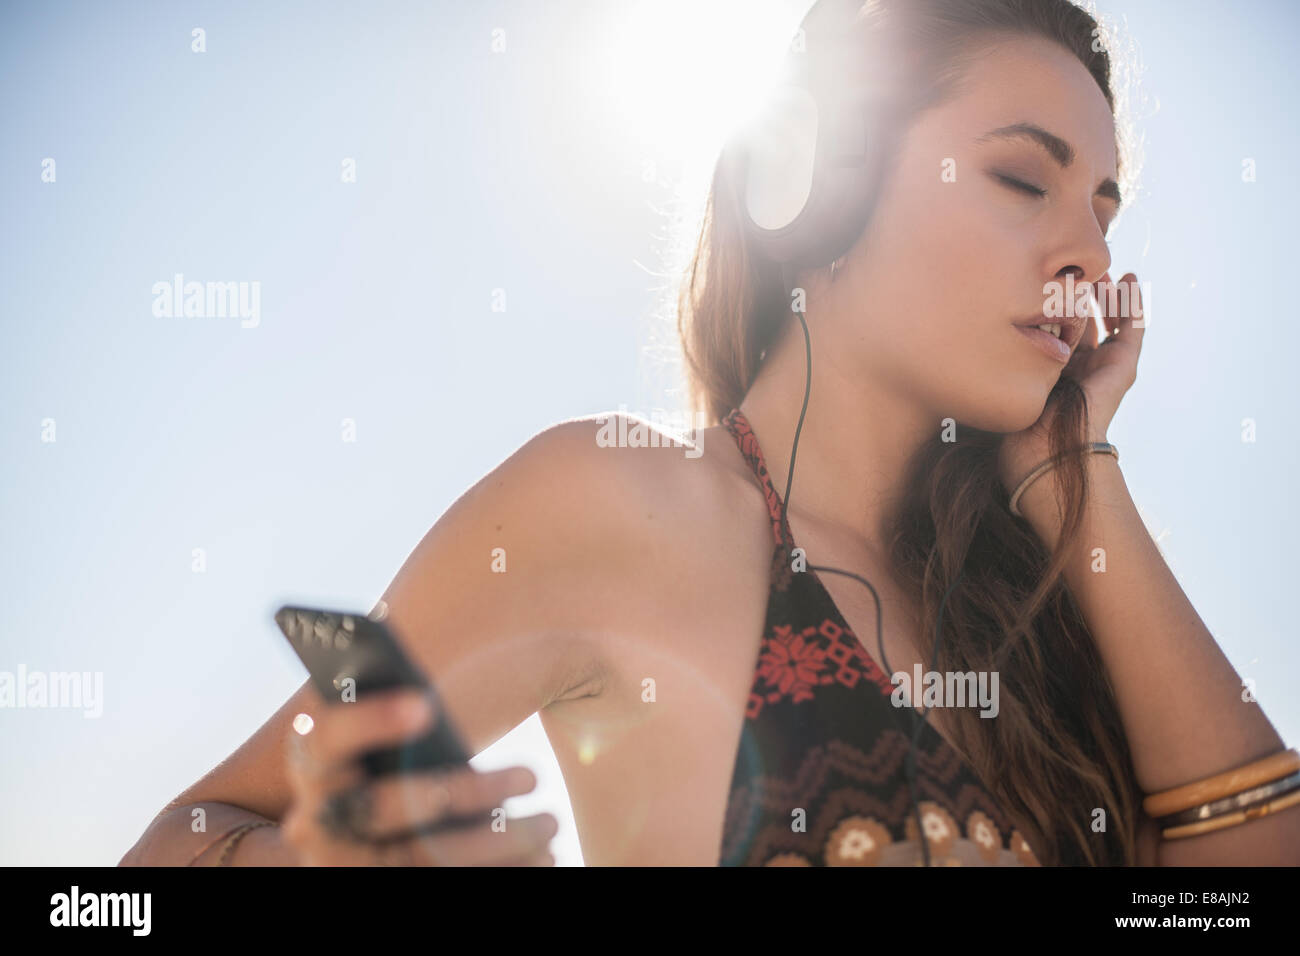 Young woman with eyes closed listening to music on headphones at beach, Castiadas, Sardinia, Italy - Stock Image